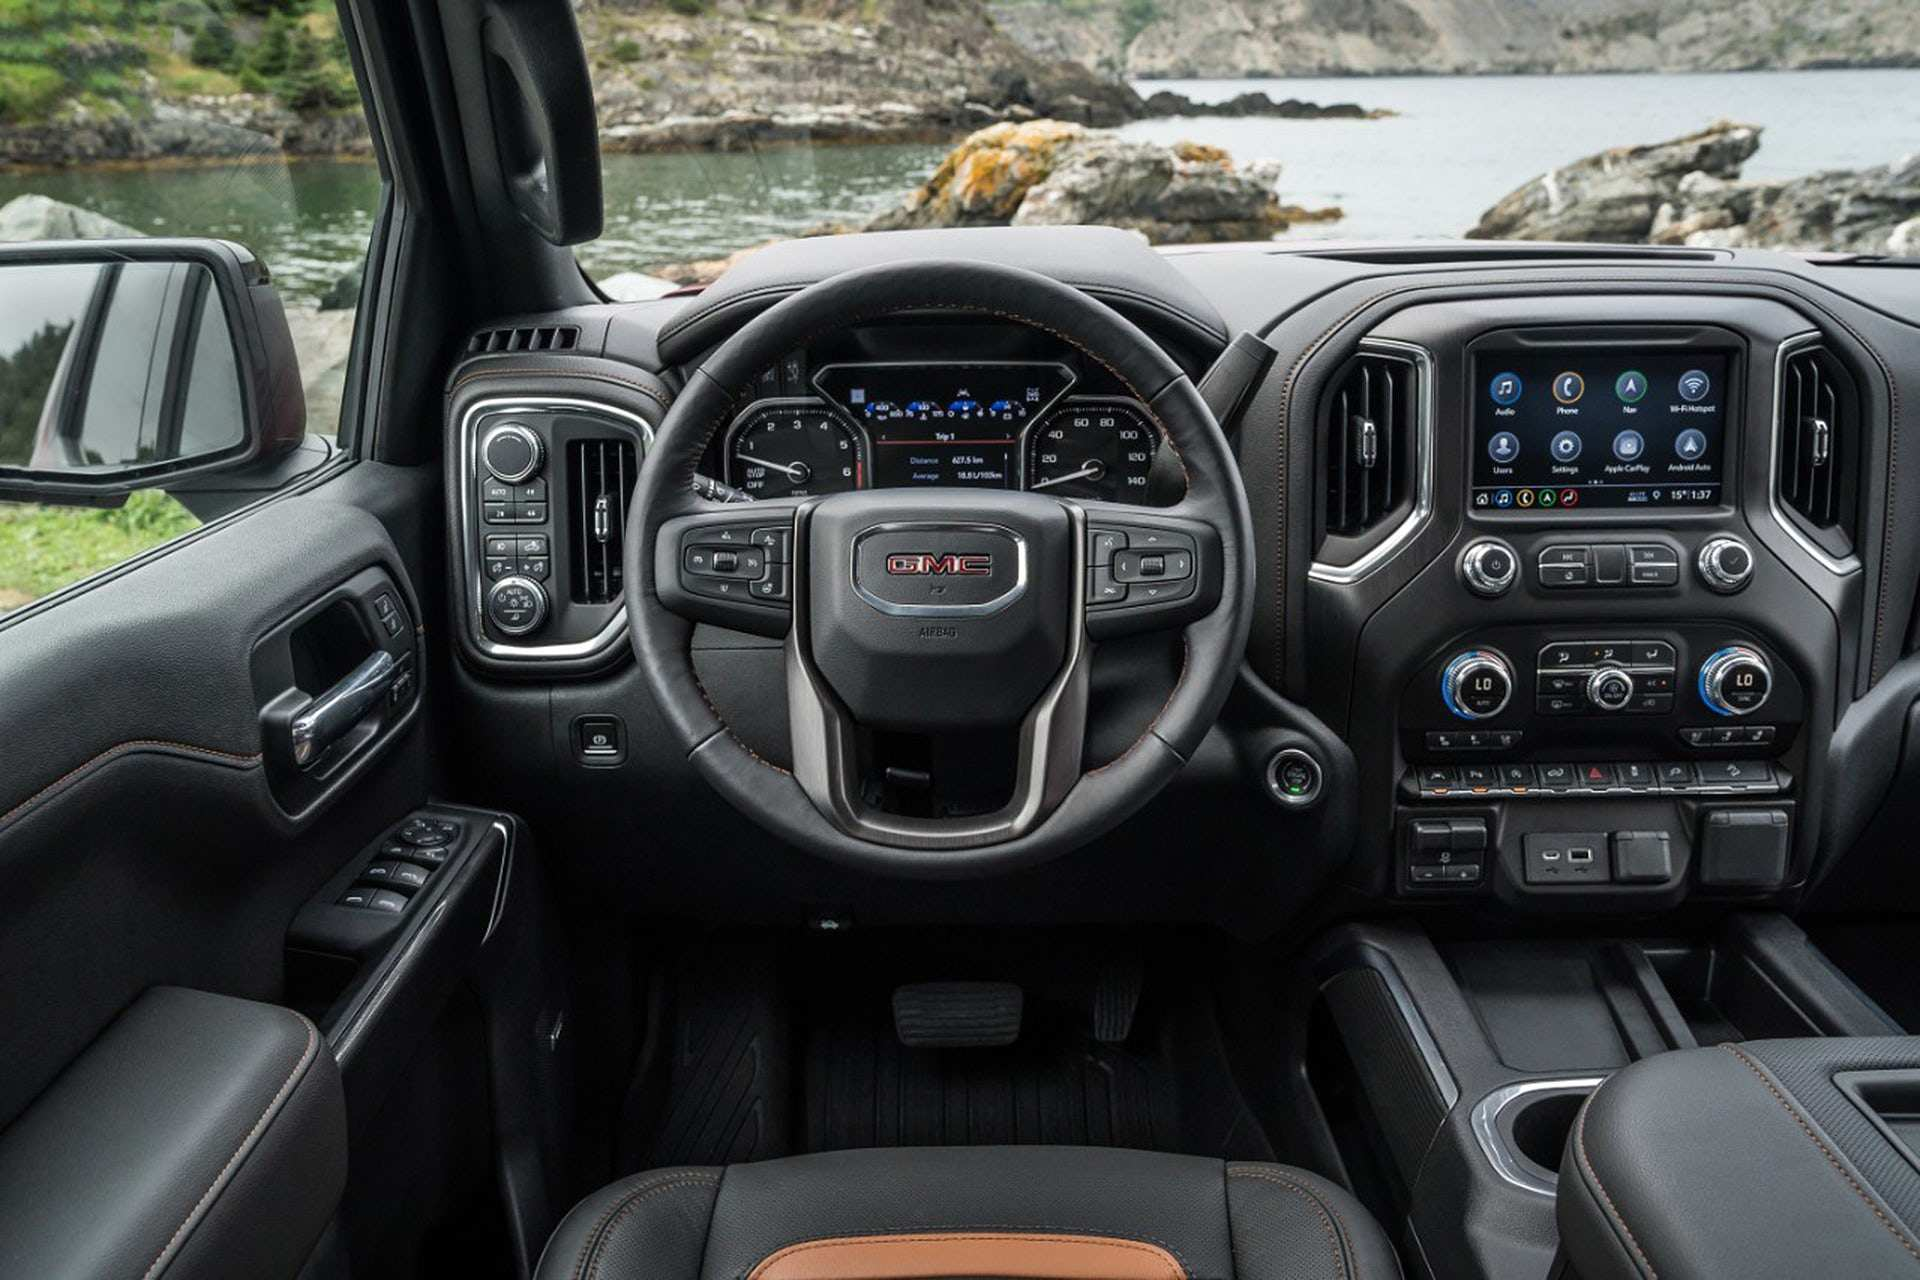 70 Best Review New 2019 Gmc Sierra At4 Interior Exterior And Review Speed Test for New 2019 Gmc Sierra At4 Interior Exterior And Review